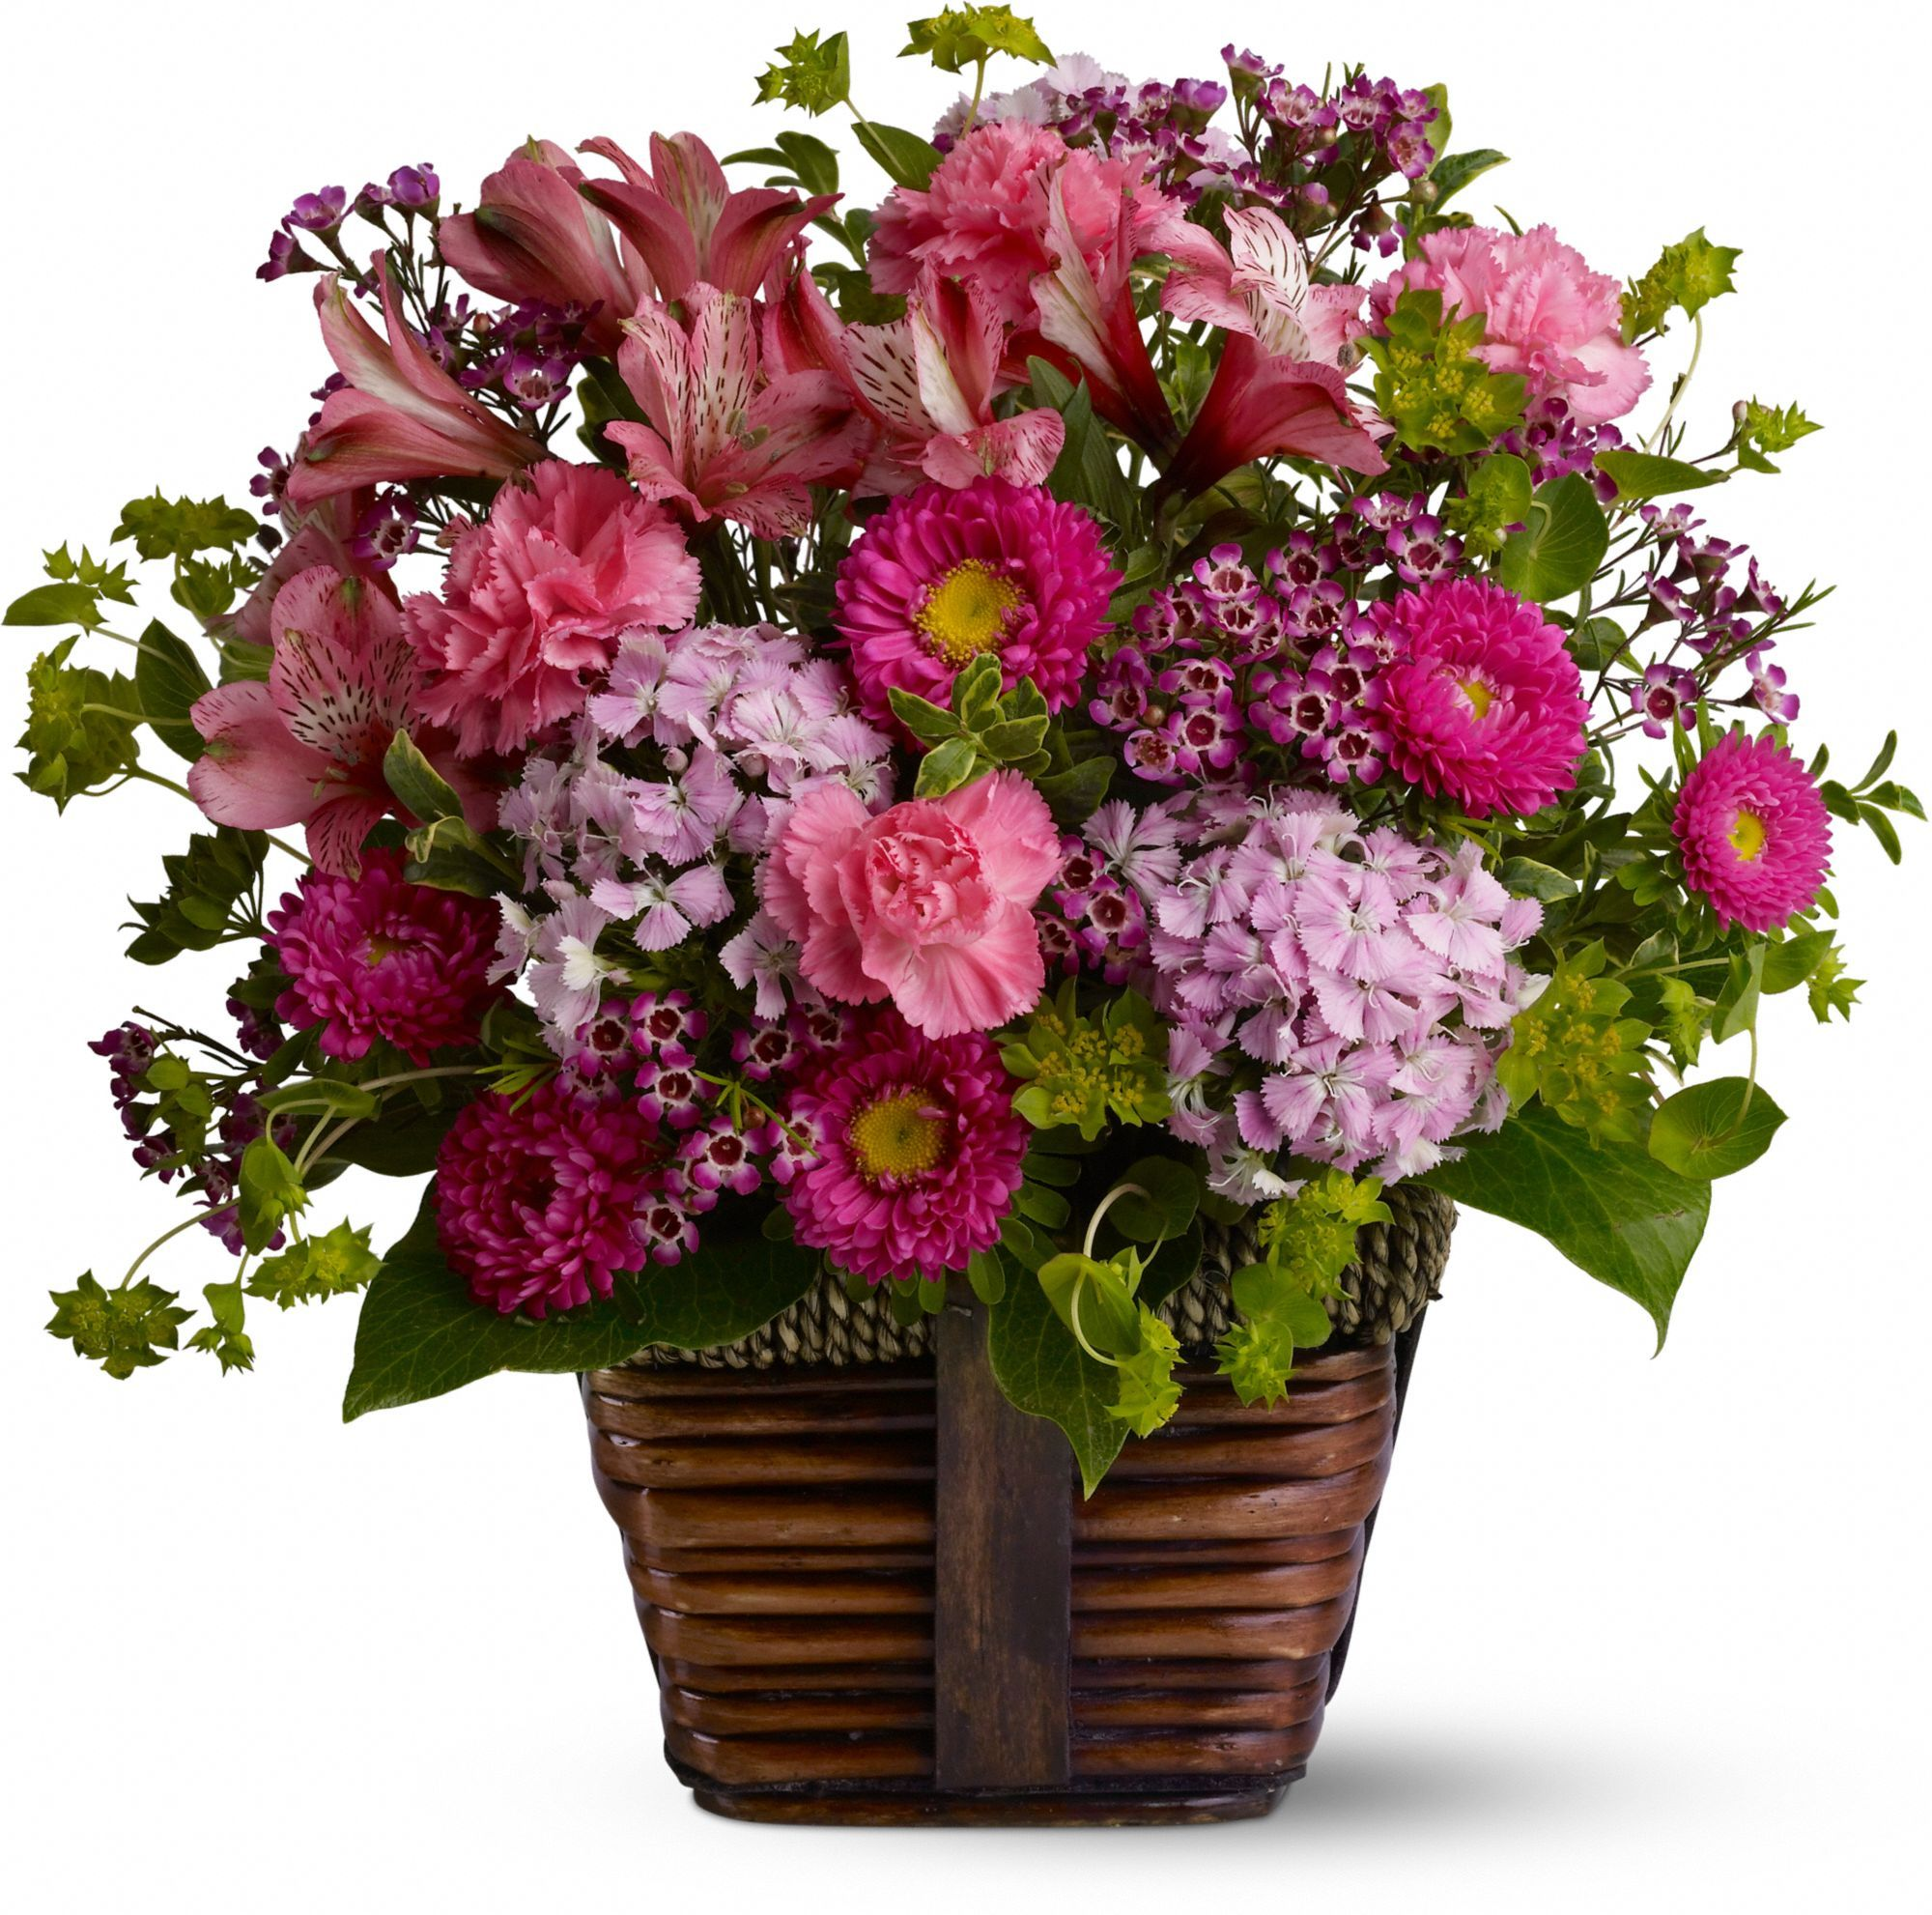 Happily Ever After Save 25 on this bouquet and many